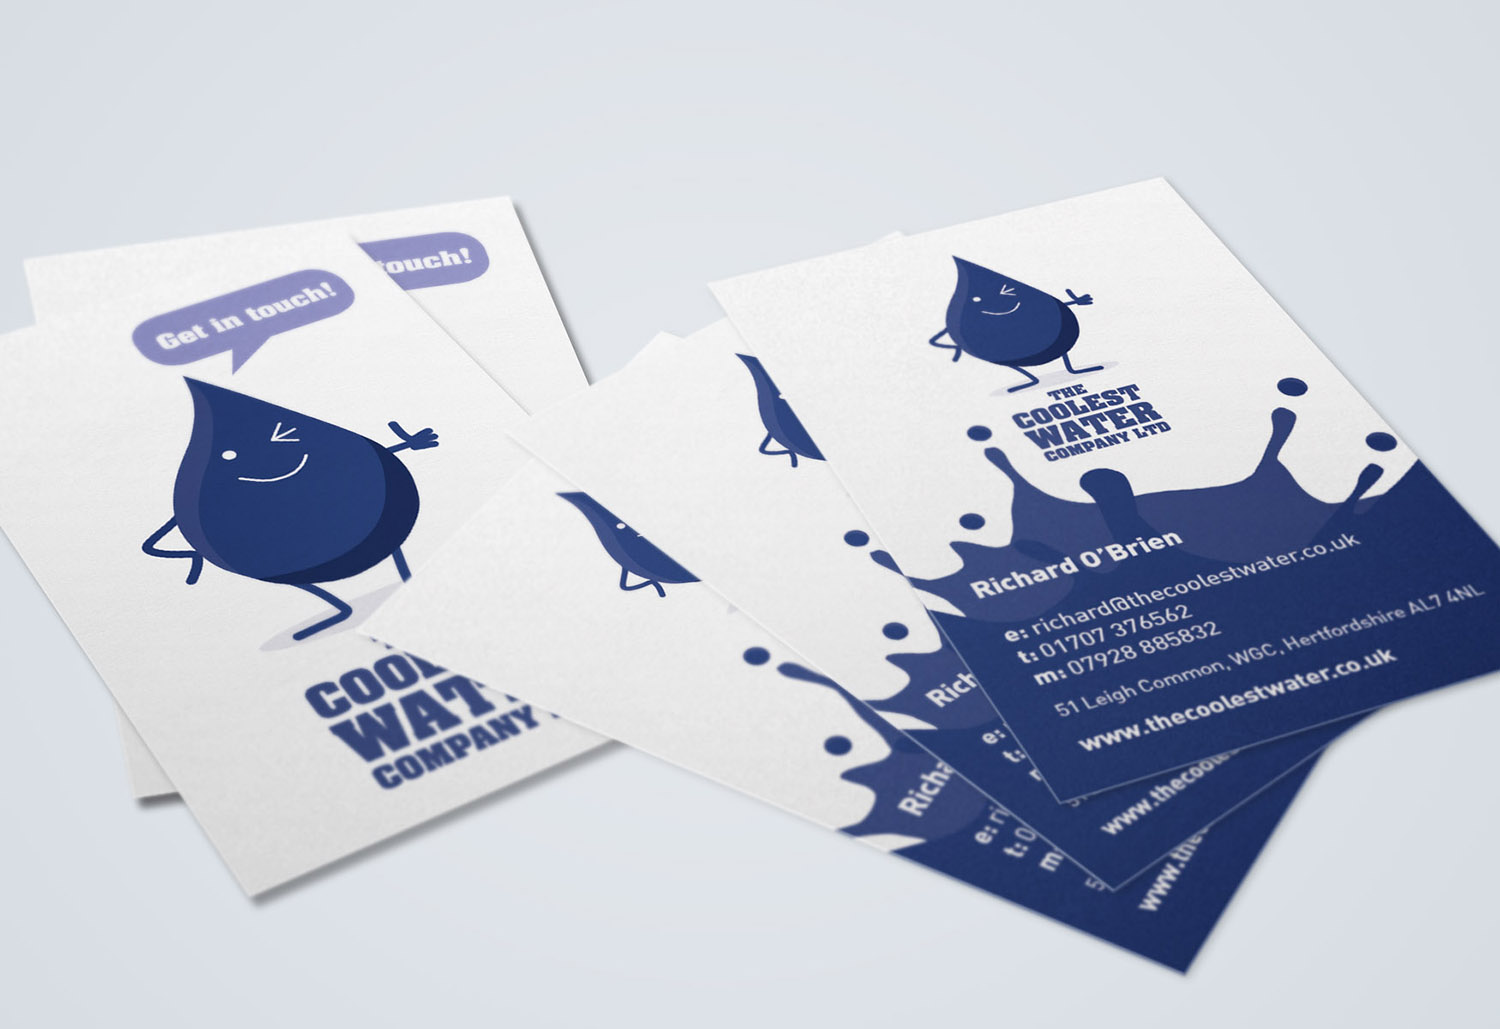 Portfolio project: The Coolest Water Ltd business cards | Beehive Green Design Studio